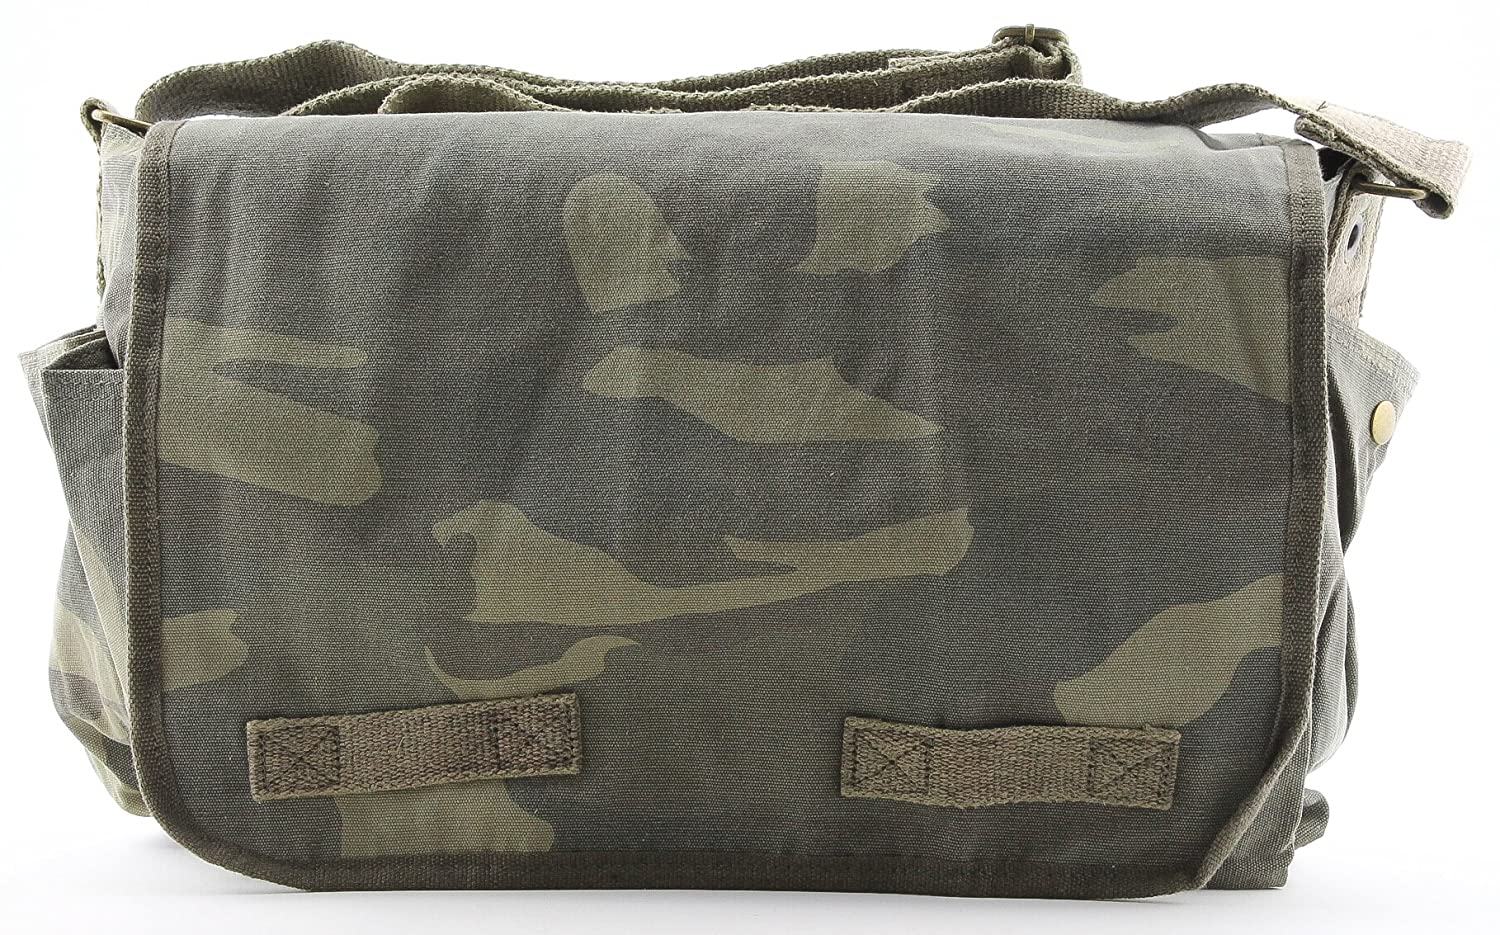 Amazon.com  Woodland Camouflage Mini Messenger Bag Heavyweight Cotton Canvas  Shoulder Bag with official Army Universe Pin  Camouflage Messenger Bag  ... 88d1feaa4a8